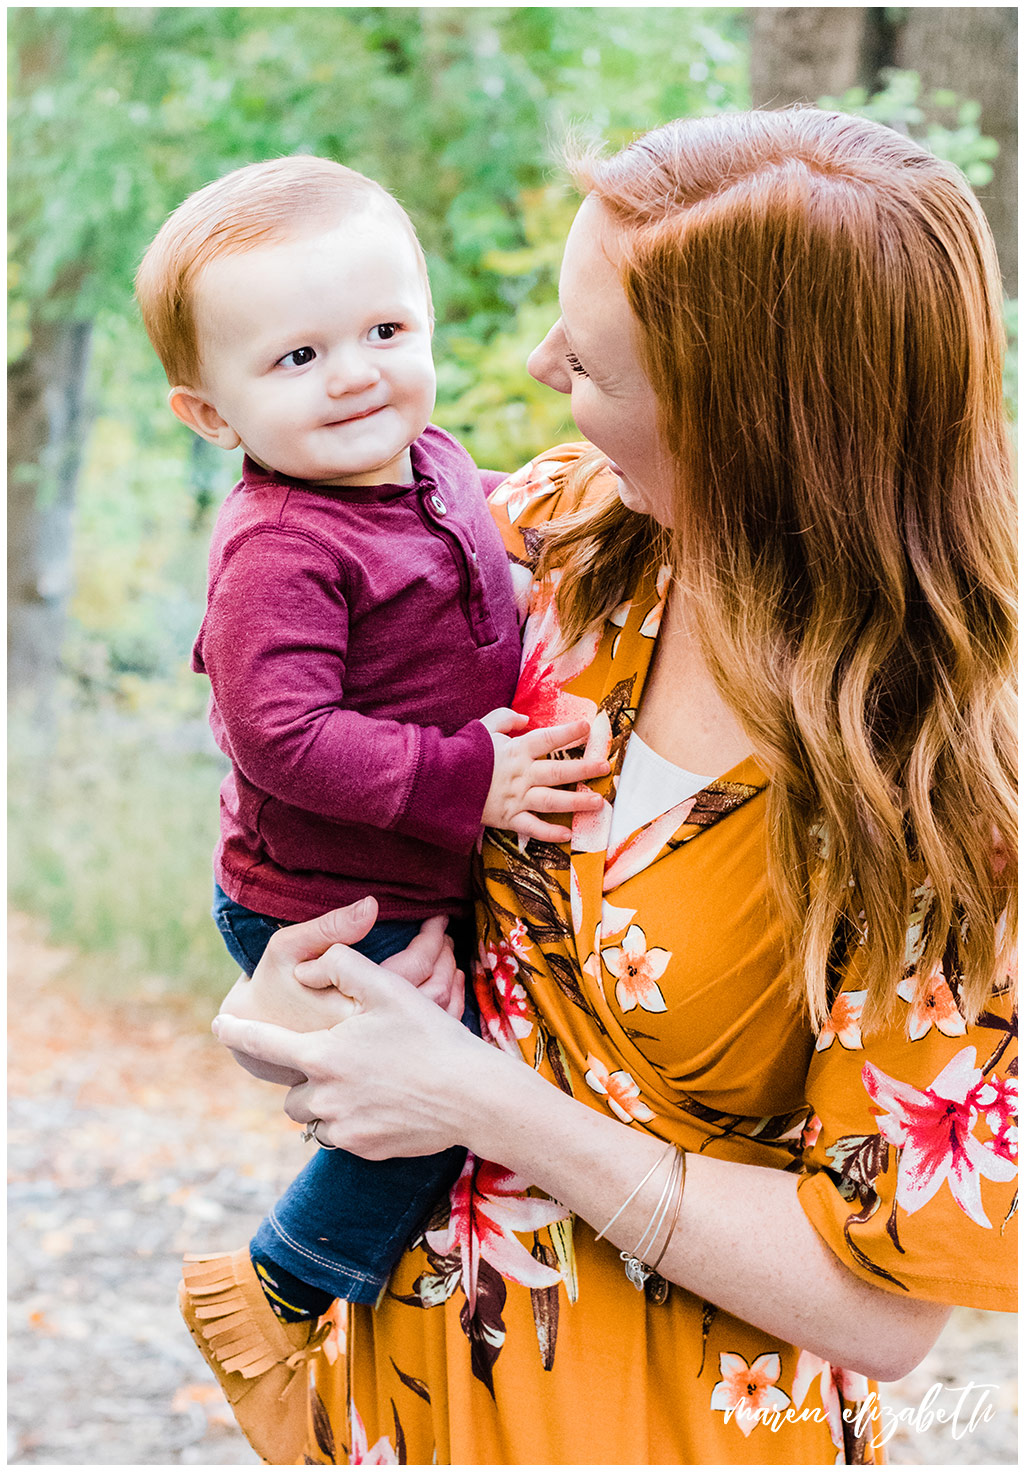 Utah Fall Mini Sessions 2018 | Did you know October is the busiest month for family pictures in utah? It's because everyone wants the fall colors in our canyons. Make sure you plan ahead to schedule your family picture session timed perfectly with the best fall colors. | Maren Elizabeth Photography | Utah Photographer